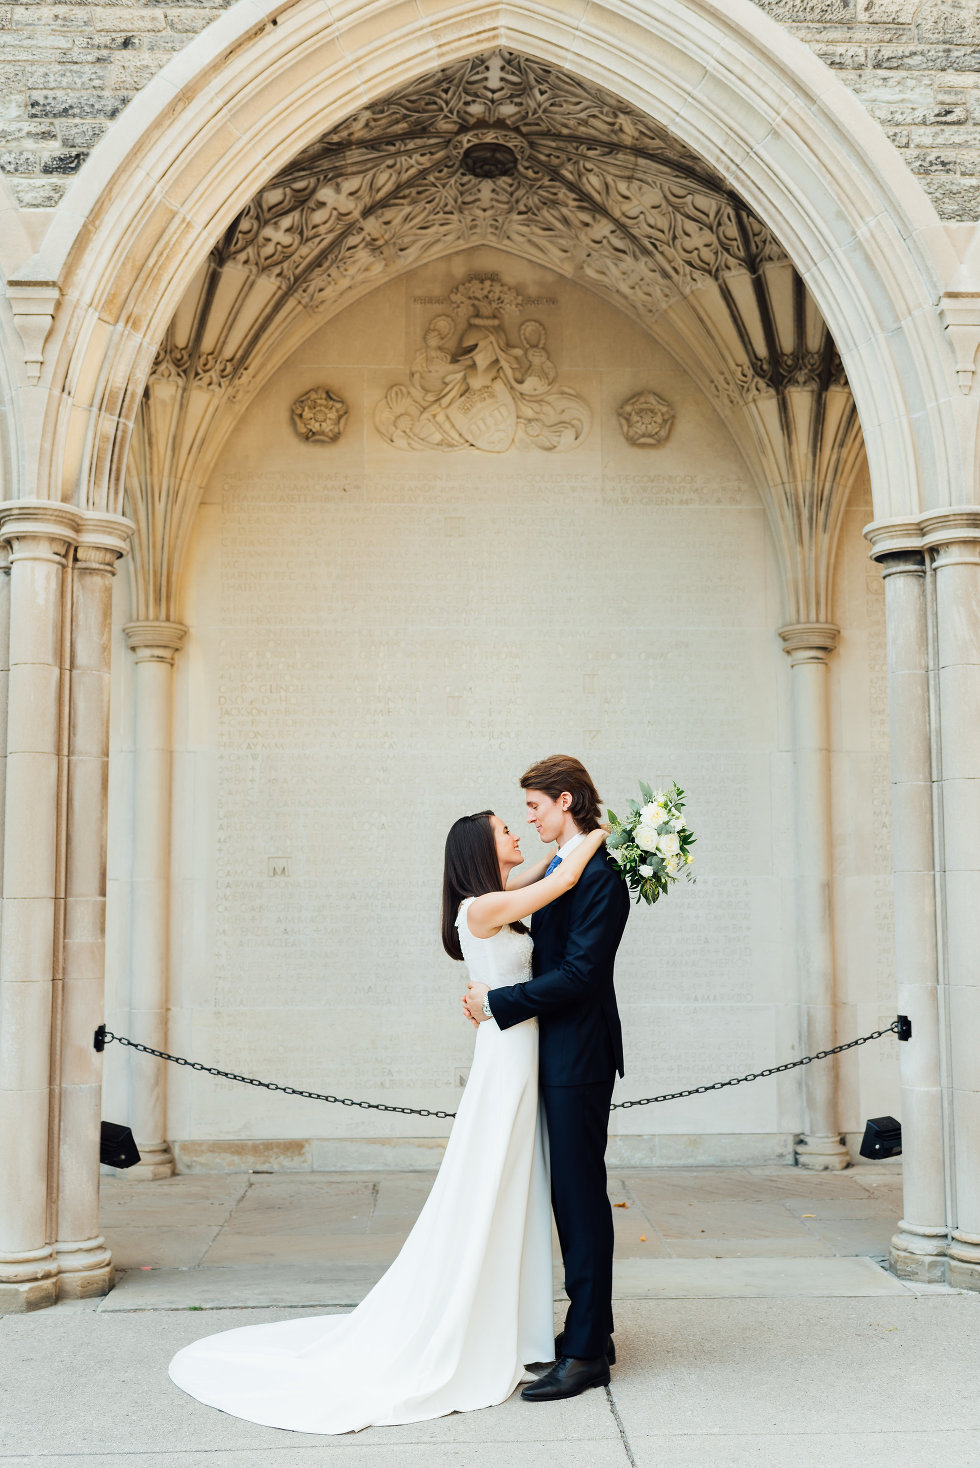 bride and groom stand together under archway of church Toronto wedding photography